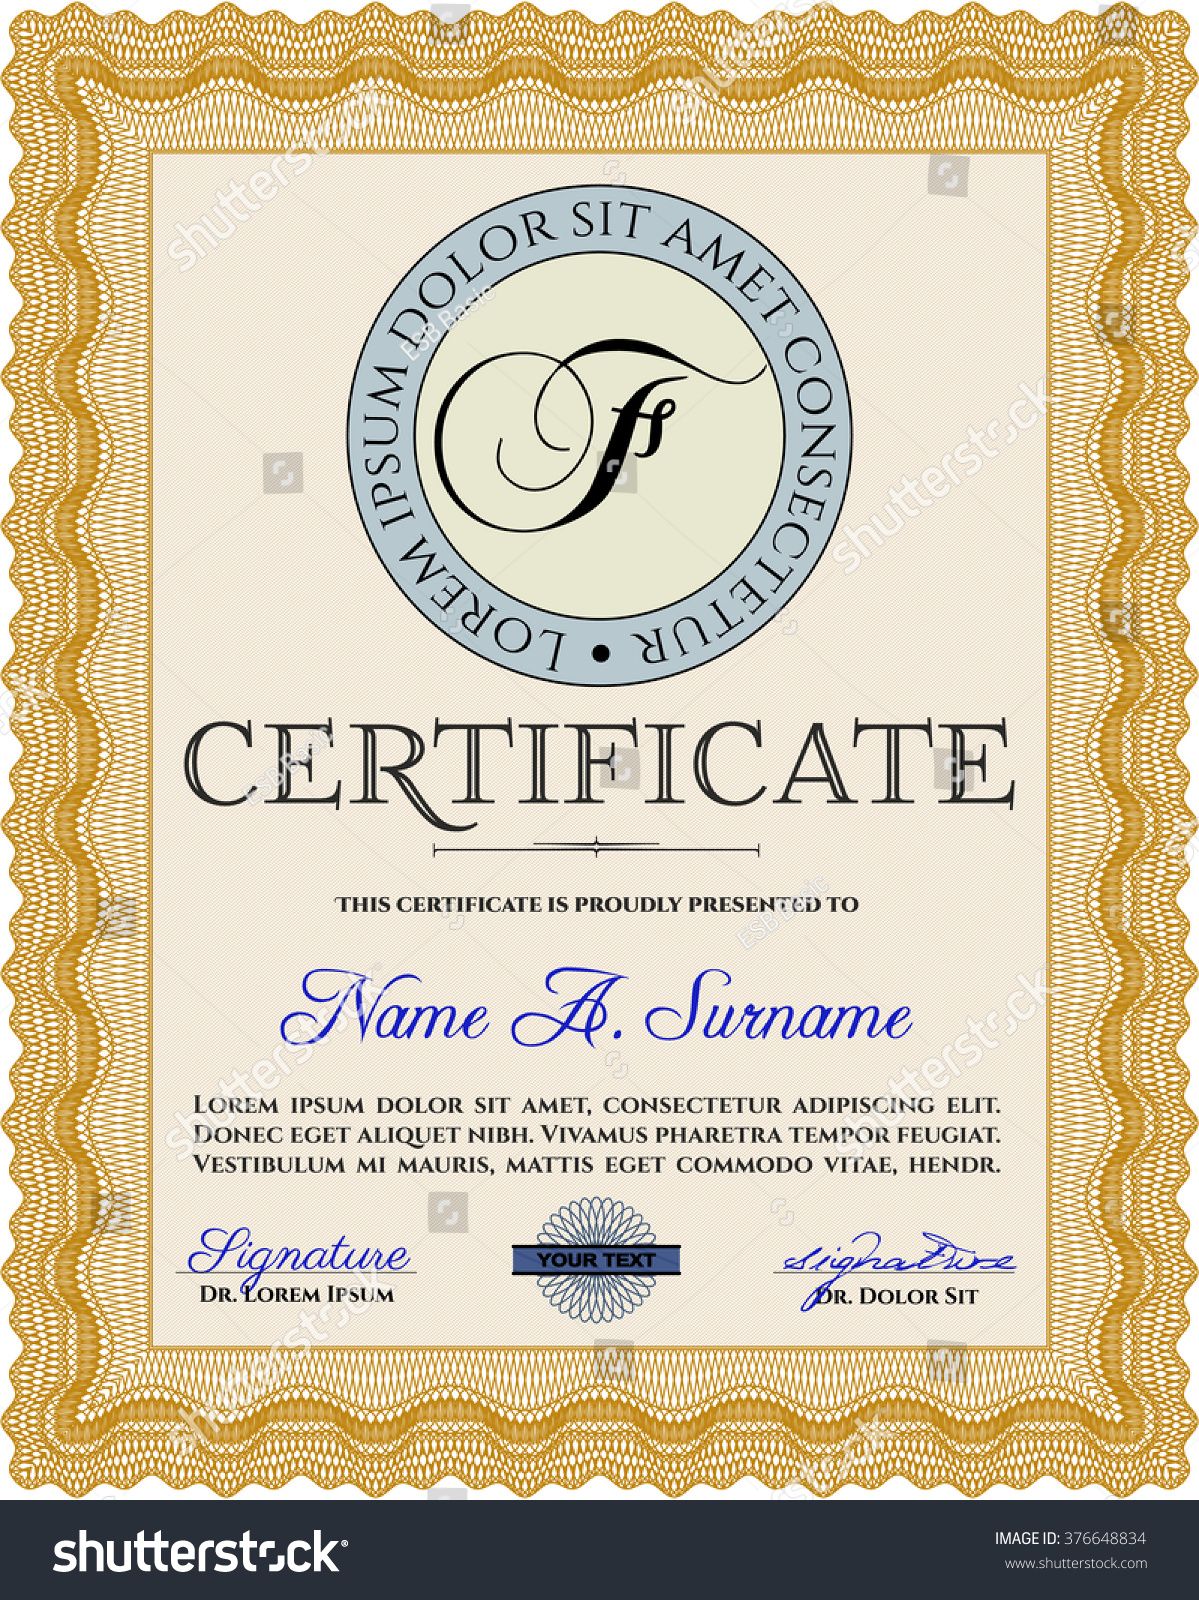 Pageant certificate template image collections templates example reiki certificate template free choice image templates example martial arts certificate templates choice image templates generous yelopaper Images